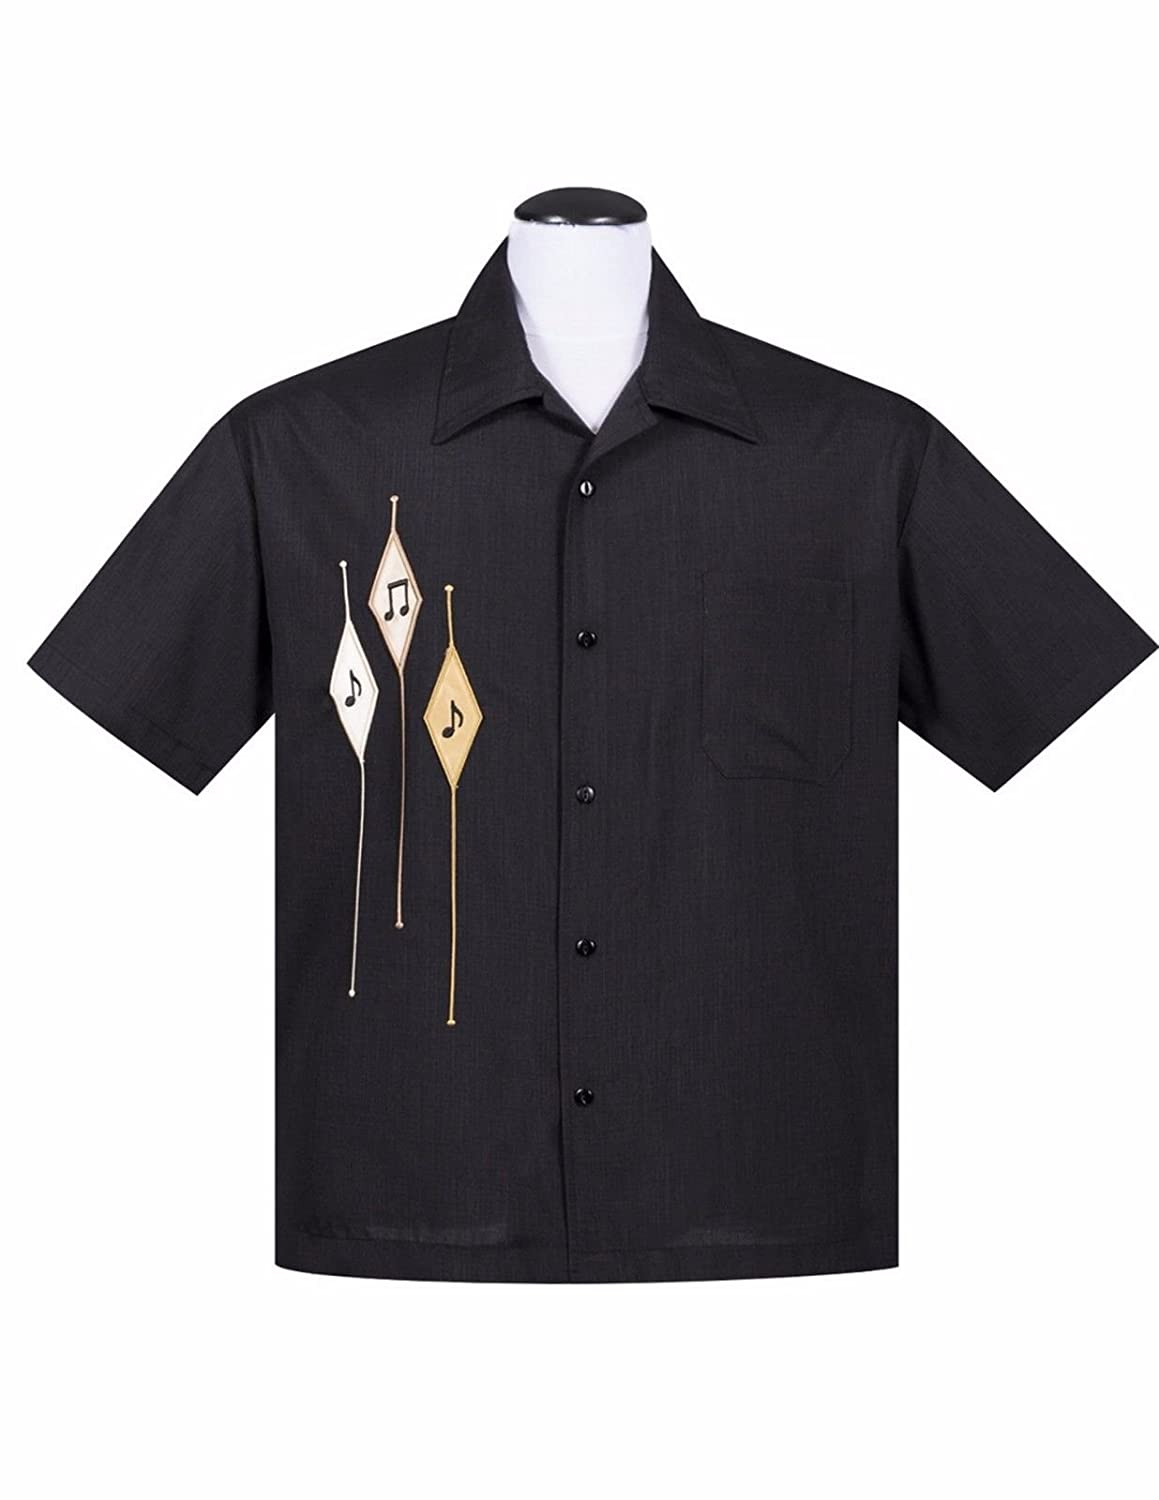 Steady Diamond Note Button Up in Black Men's Shirt Retro Inspired